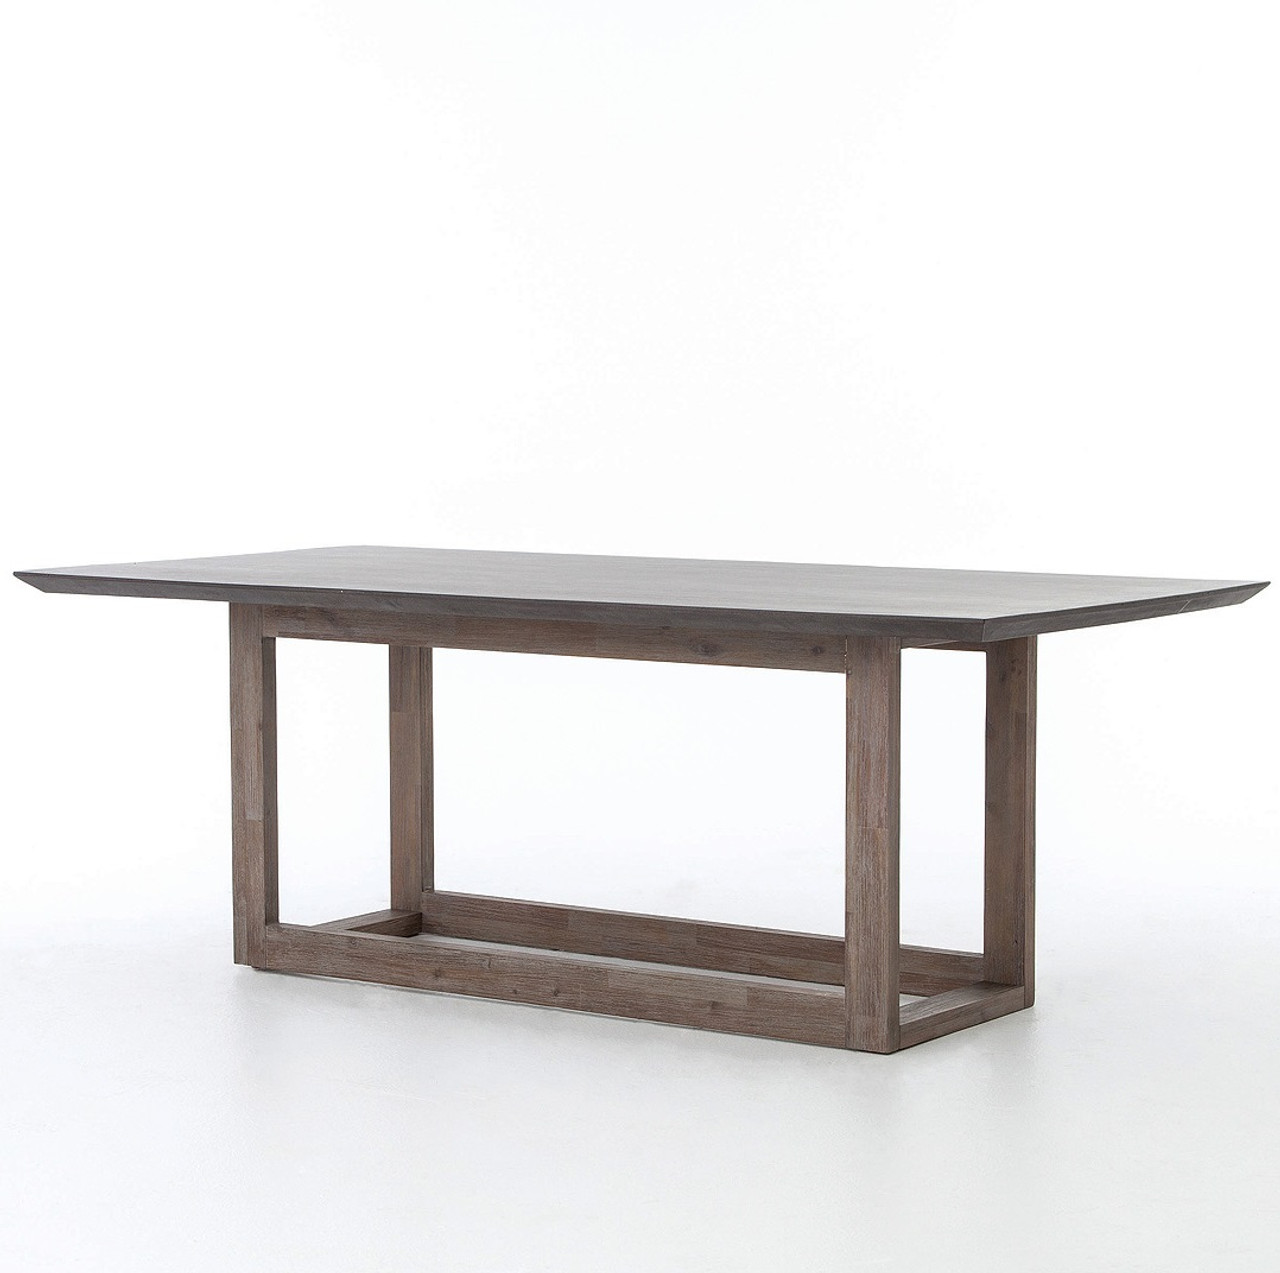 Masonry Wood And Black Concrete Dining Table 79u201d